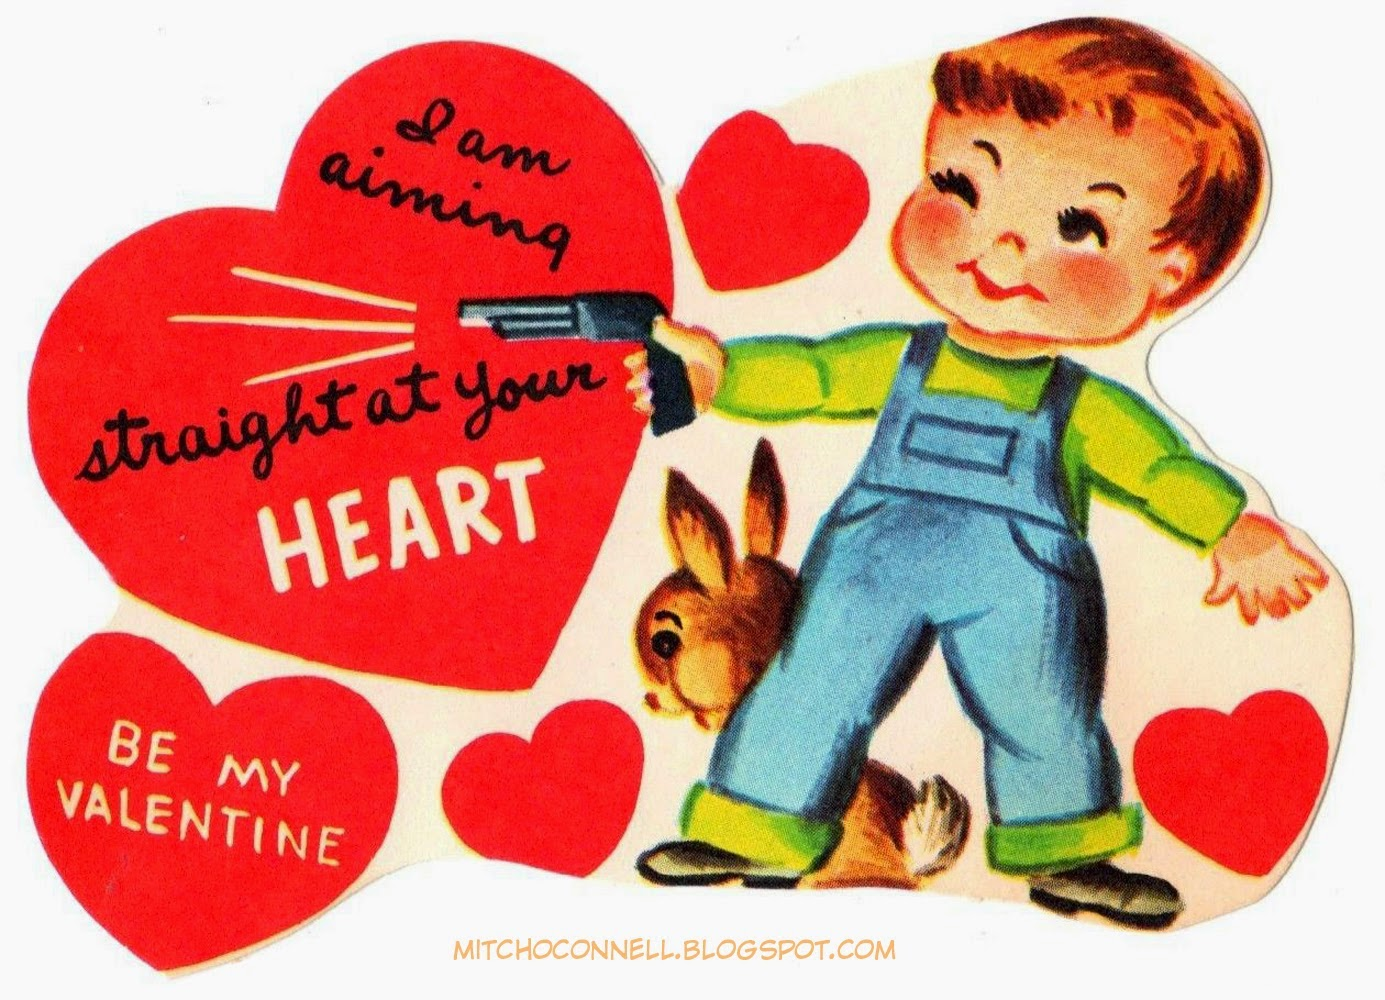 outlandish bizarre sexist eccentric and far out funny cards these valentines day cards below are from the mitch oconnell collection